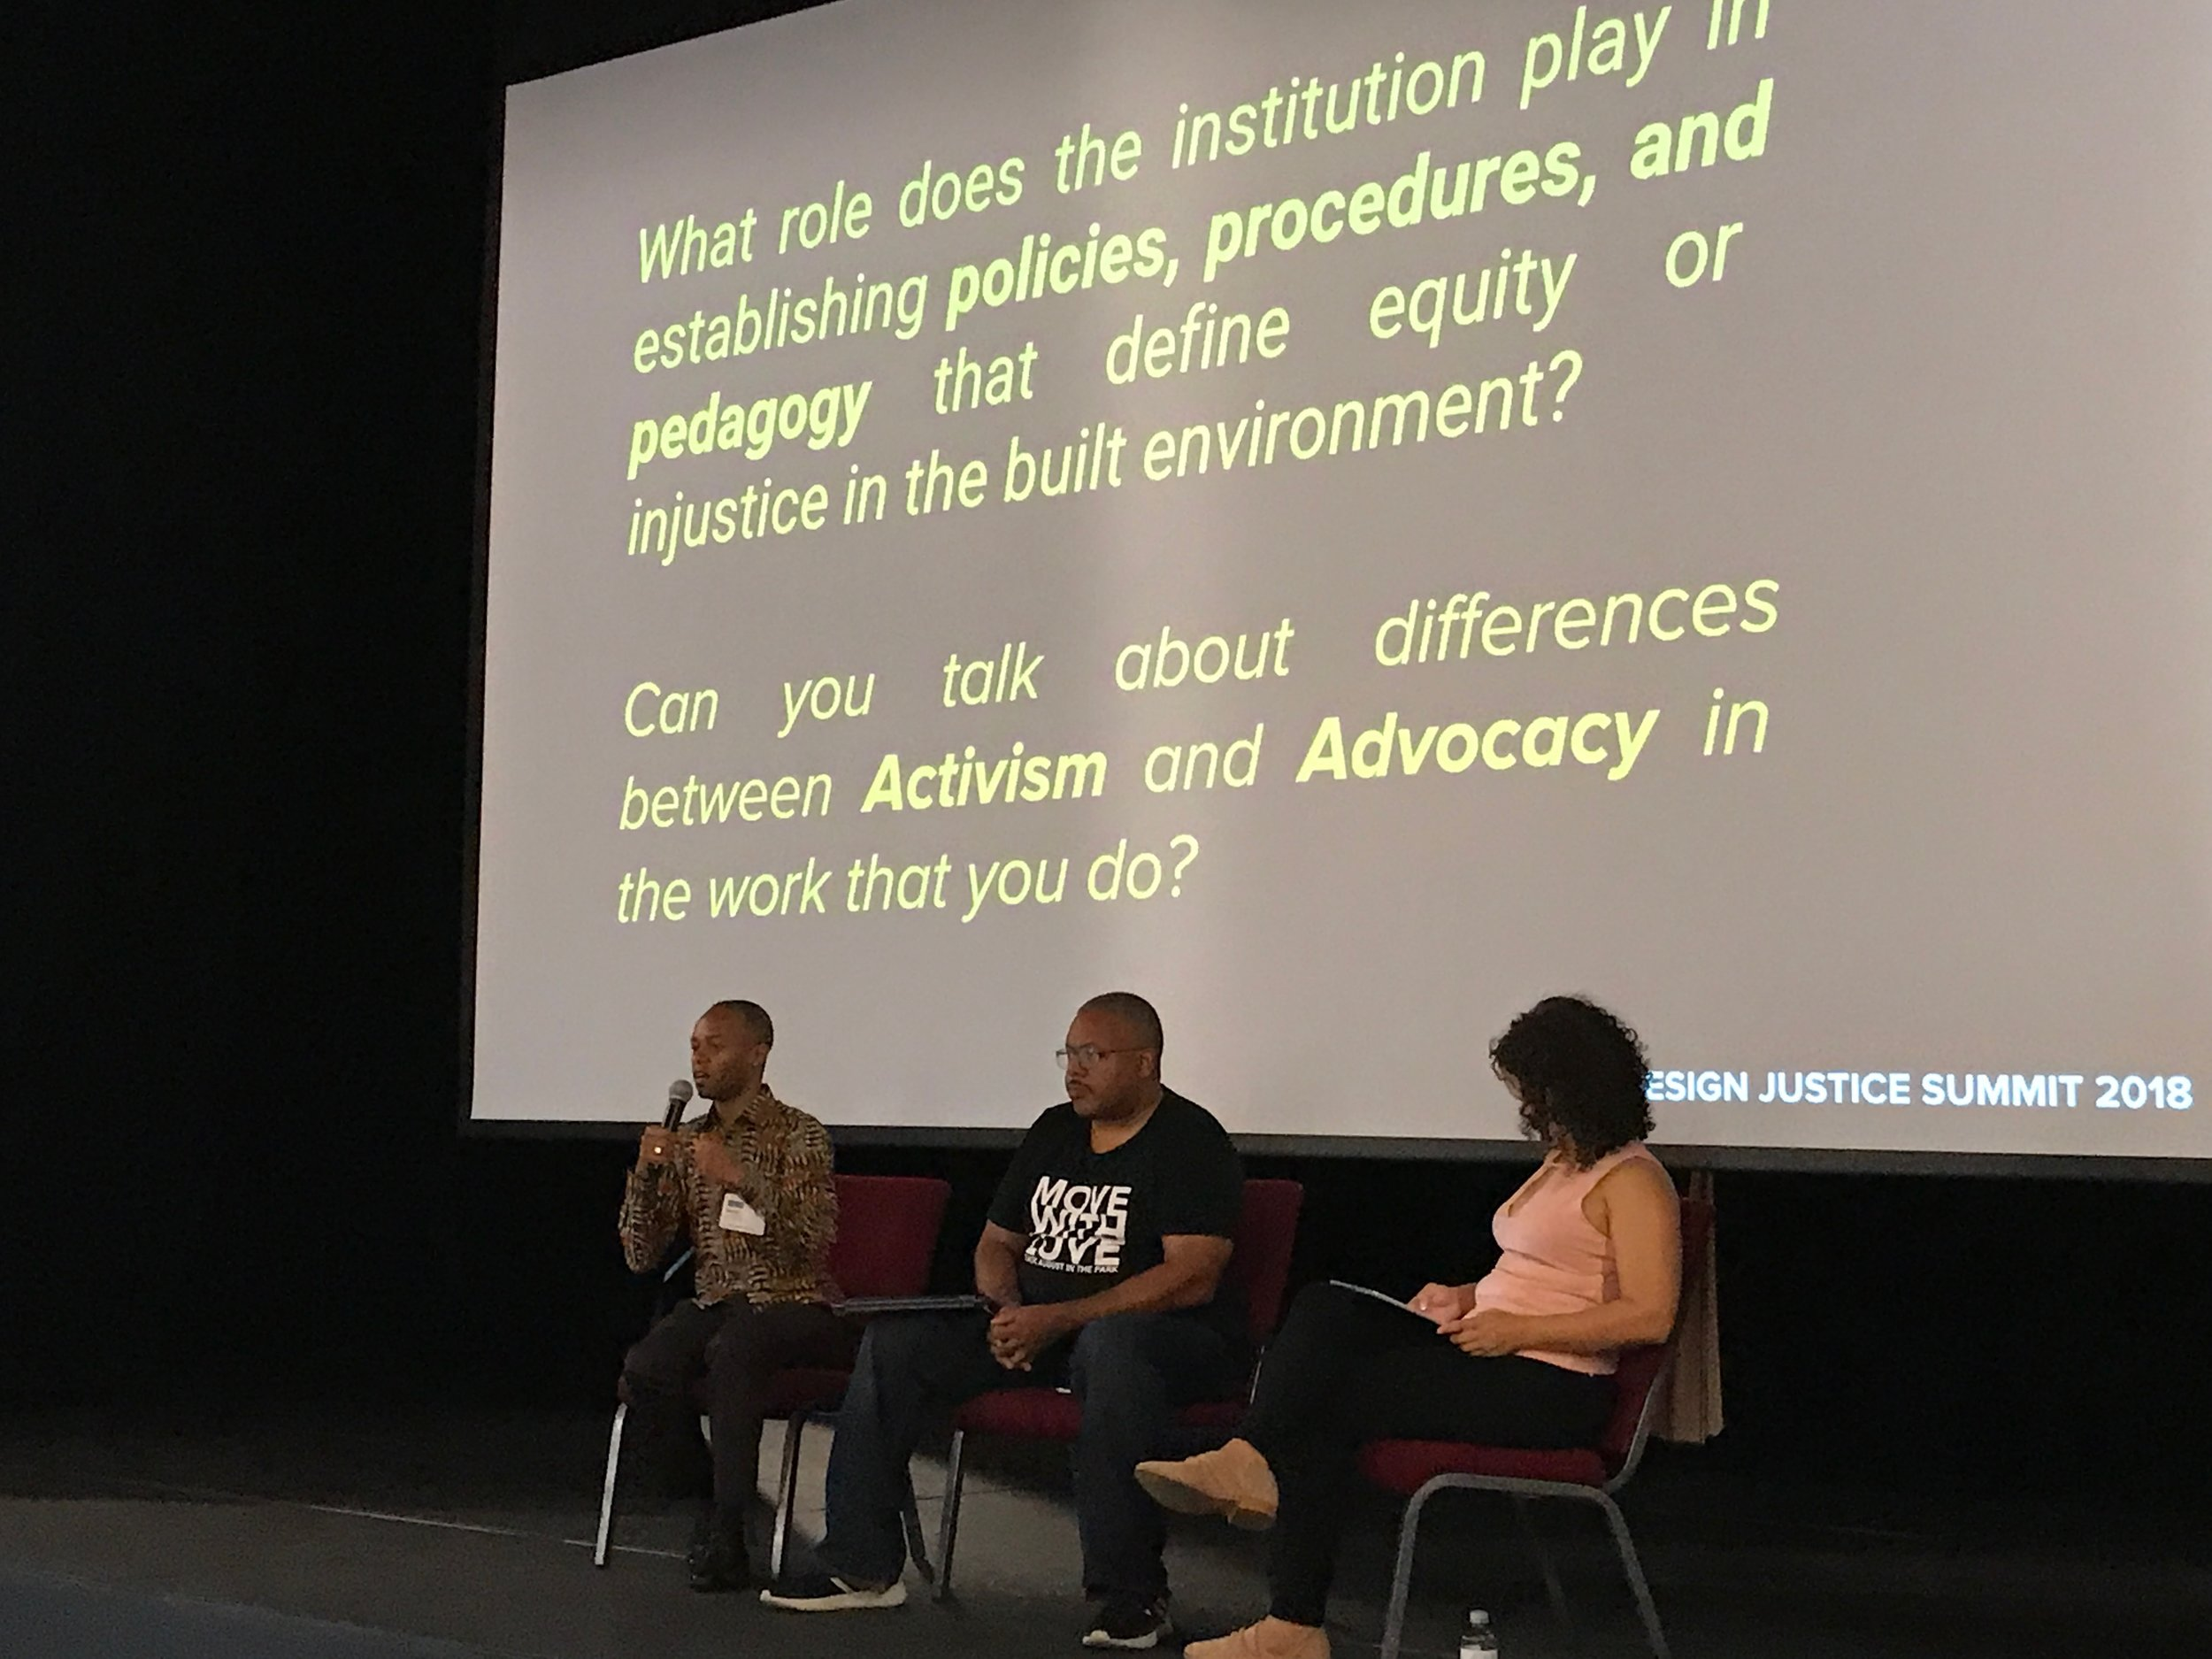 One of the panels at the 2018 Design Justice Summit